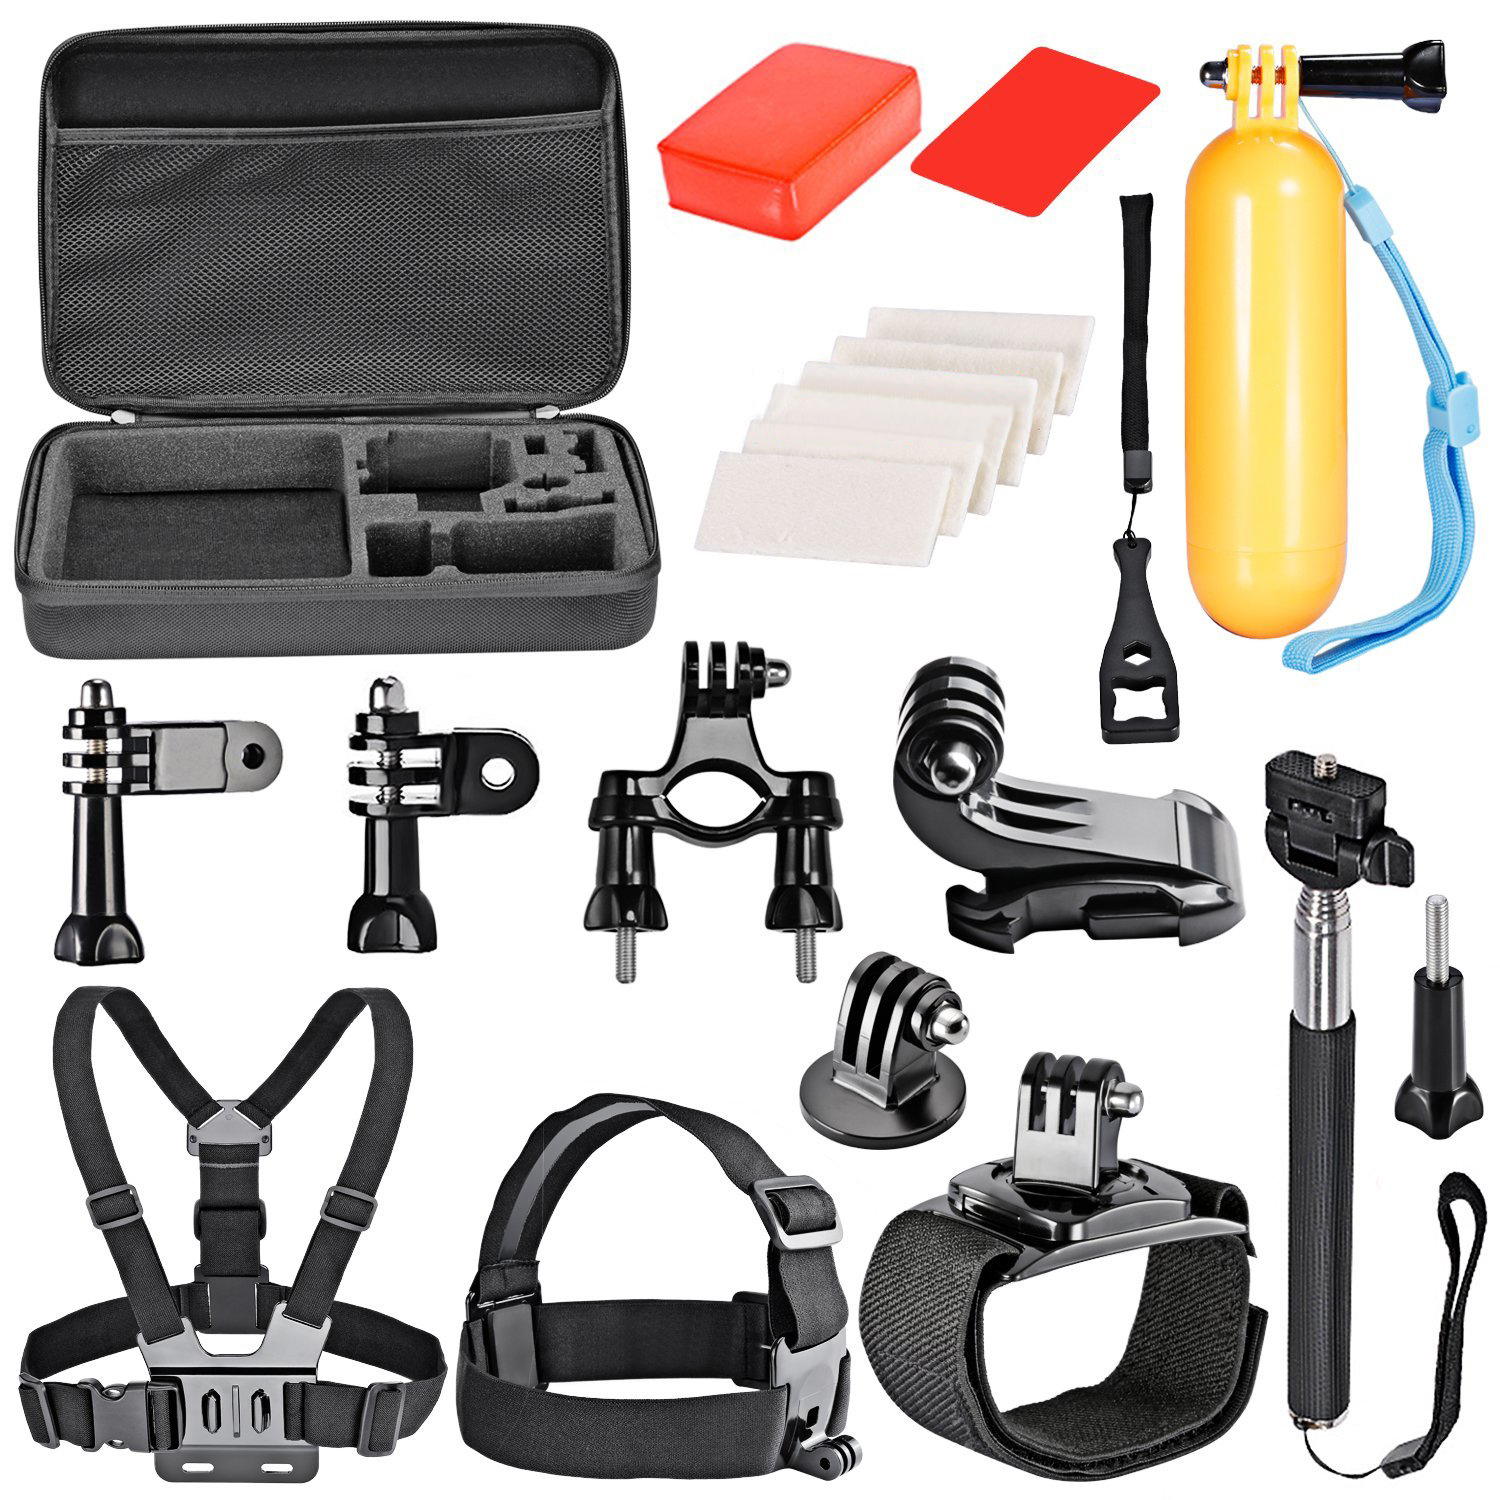 CES-18-In-1 Sport Accessory Kit for GoPro Hero4 Session Hero series for Xiaomi Yi in Ski ...